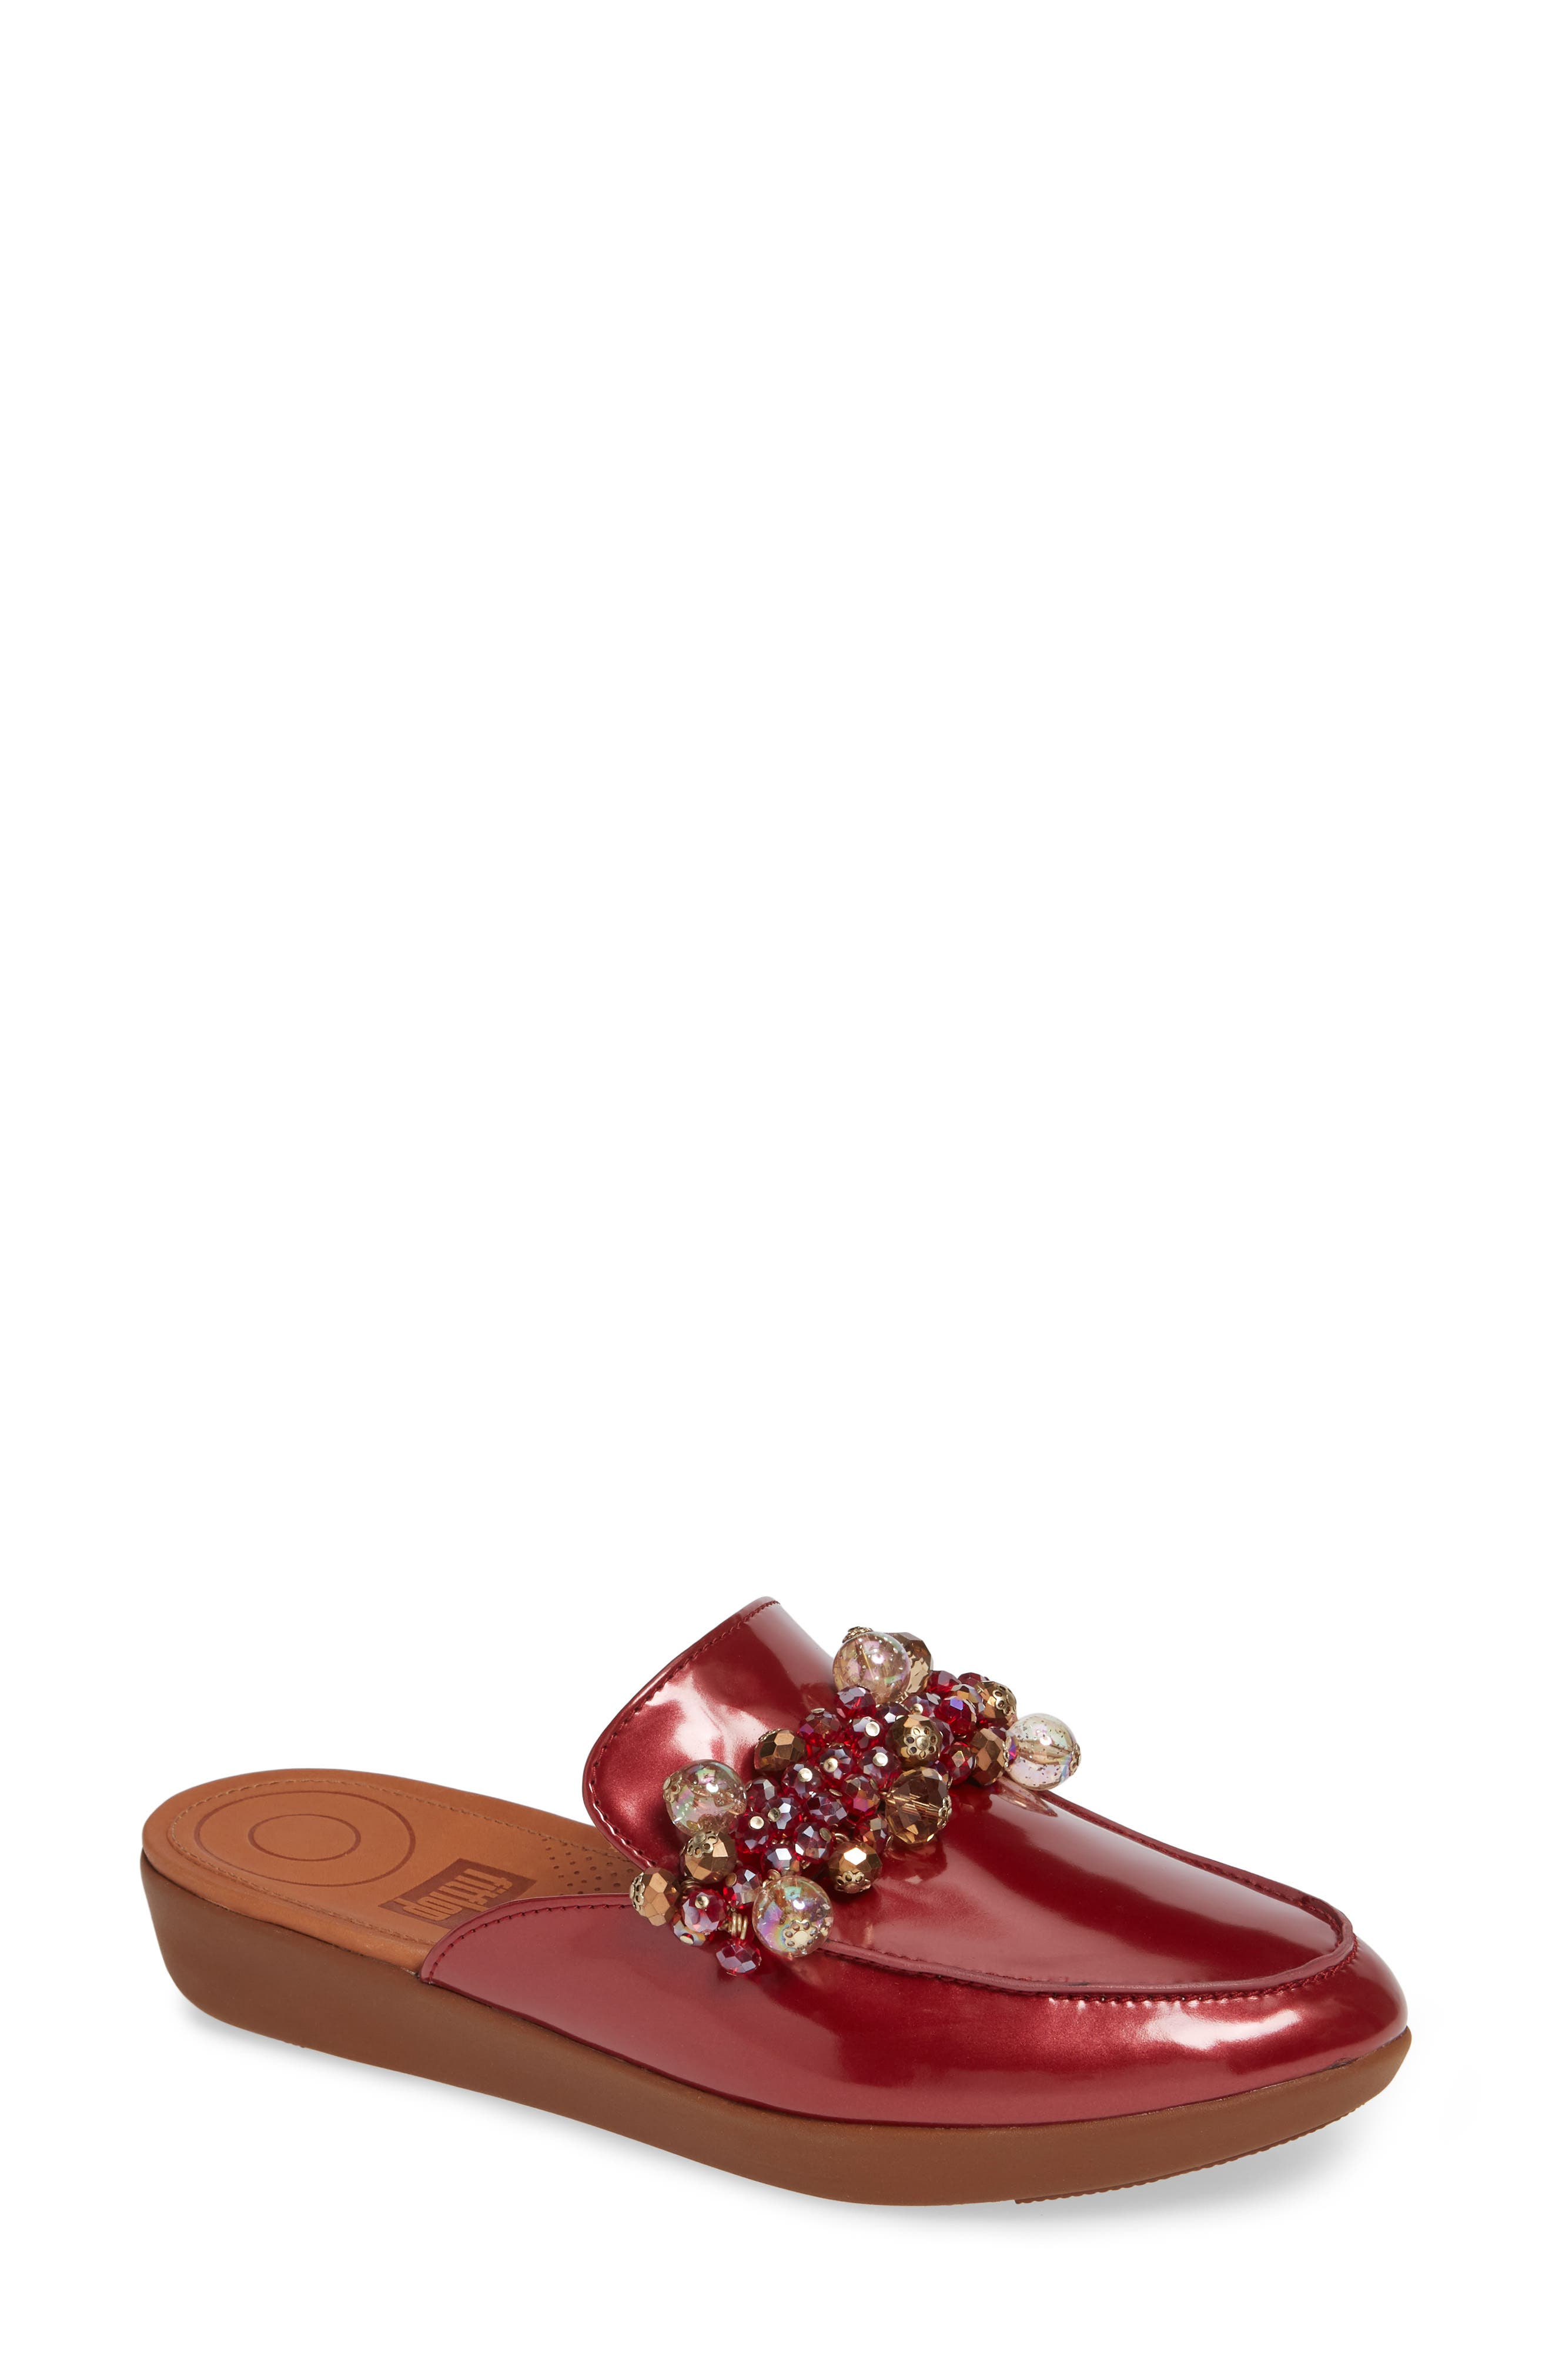 FITFLOP, Serene Beaded Mule, Main thumbnail 1, color, FIRE RED PATENT LEATHER